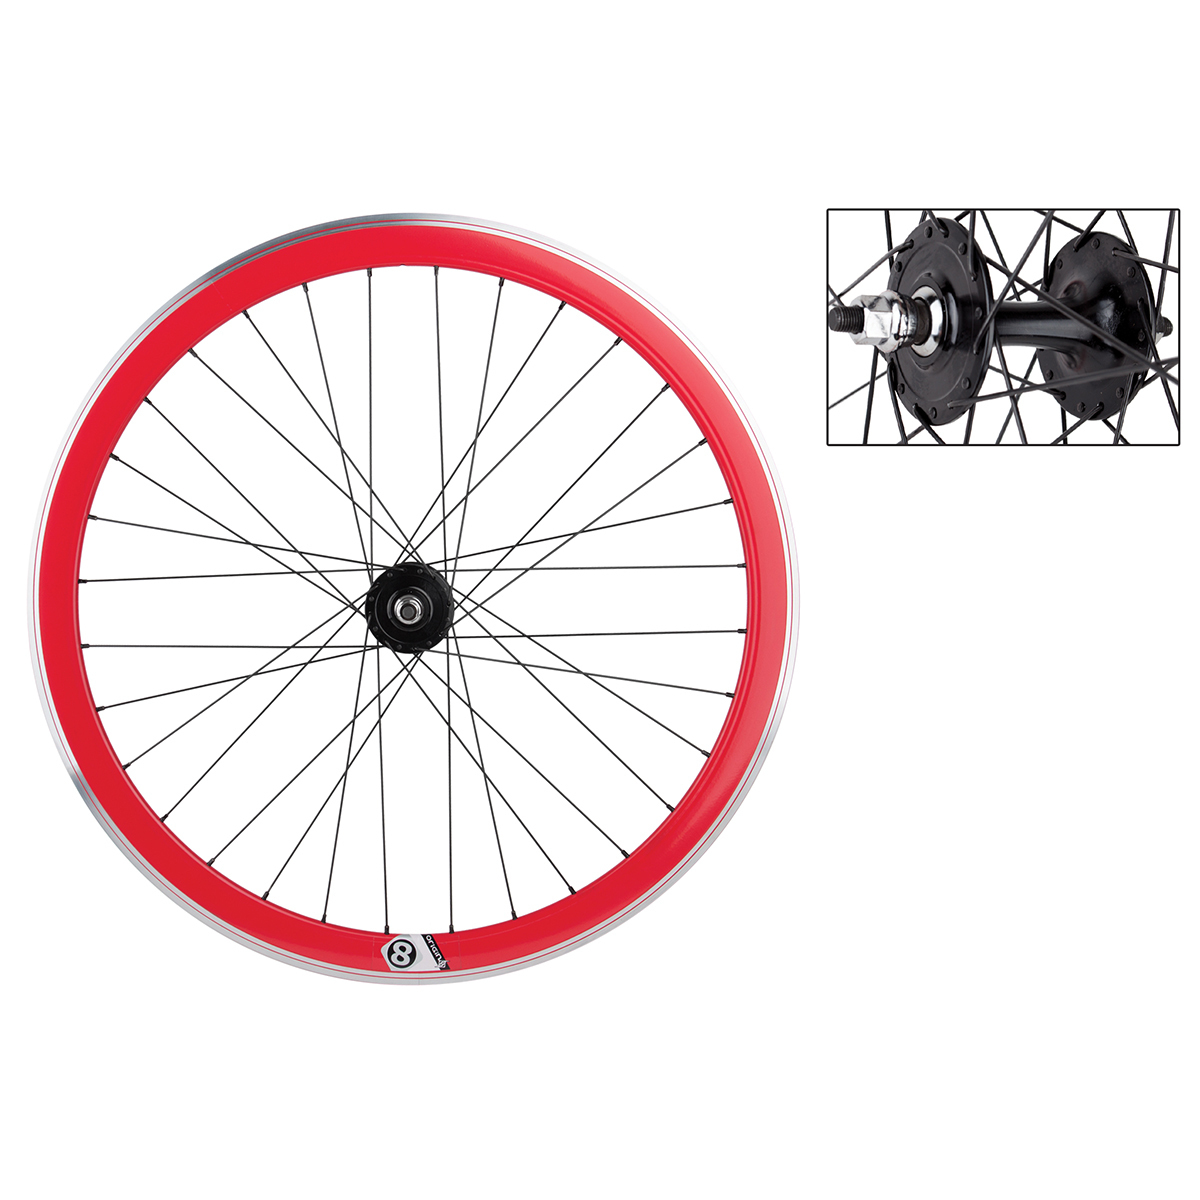 Origin8 TA42 700c Bike Wheelset Red MSW FX/FW Loose Hub